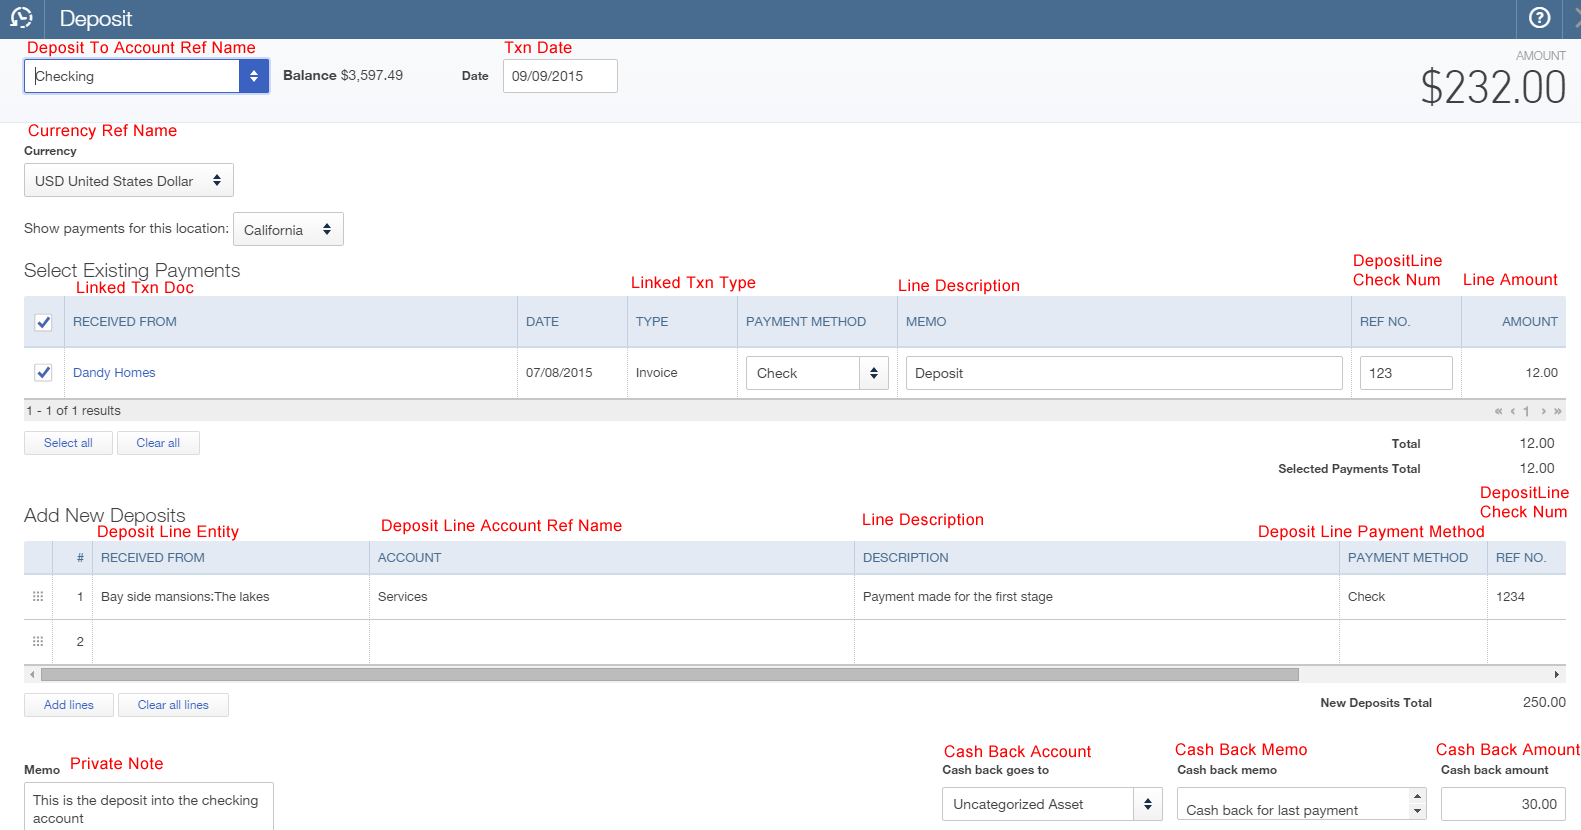 Import deposits into QuickBooks Online - Zed Systems